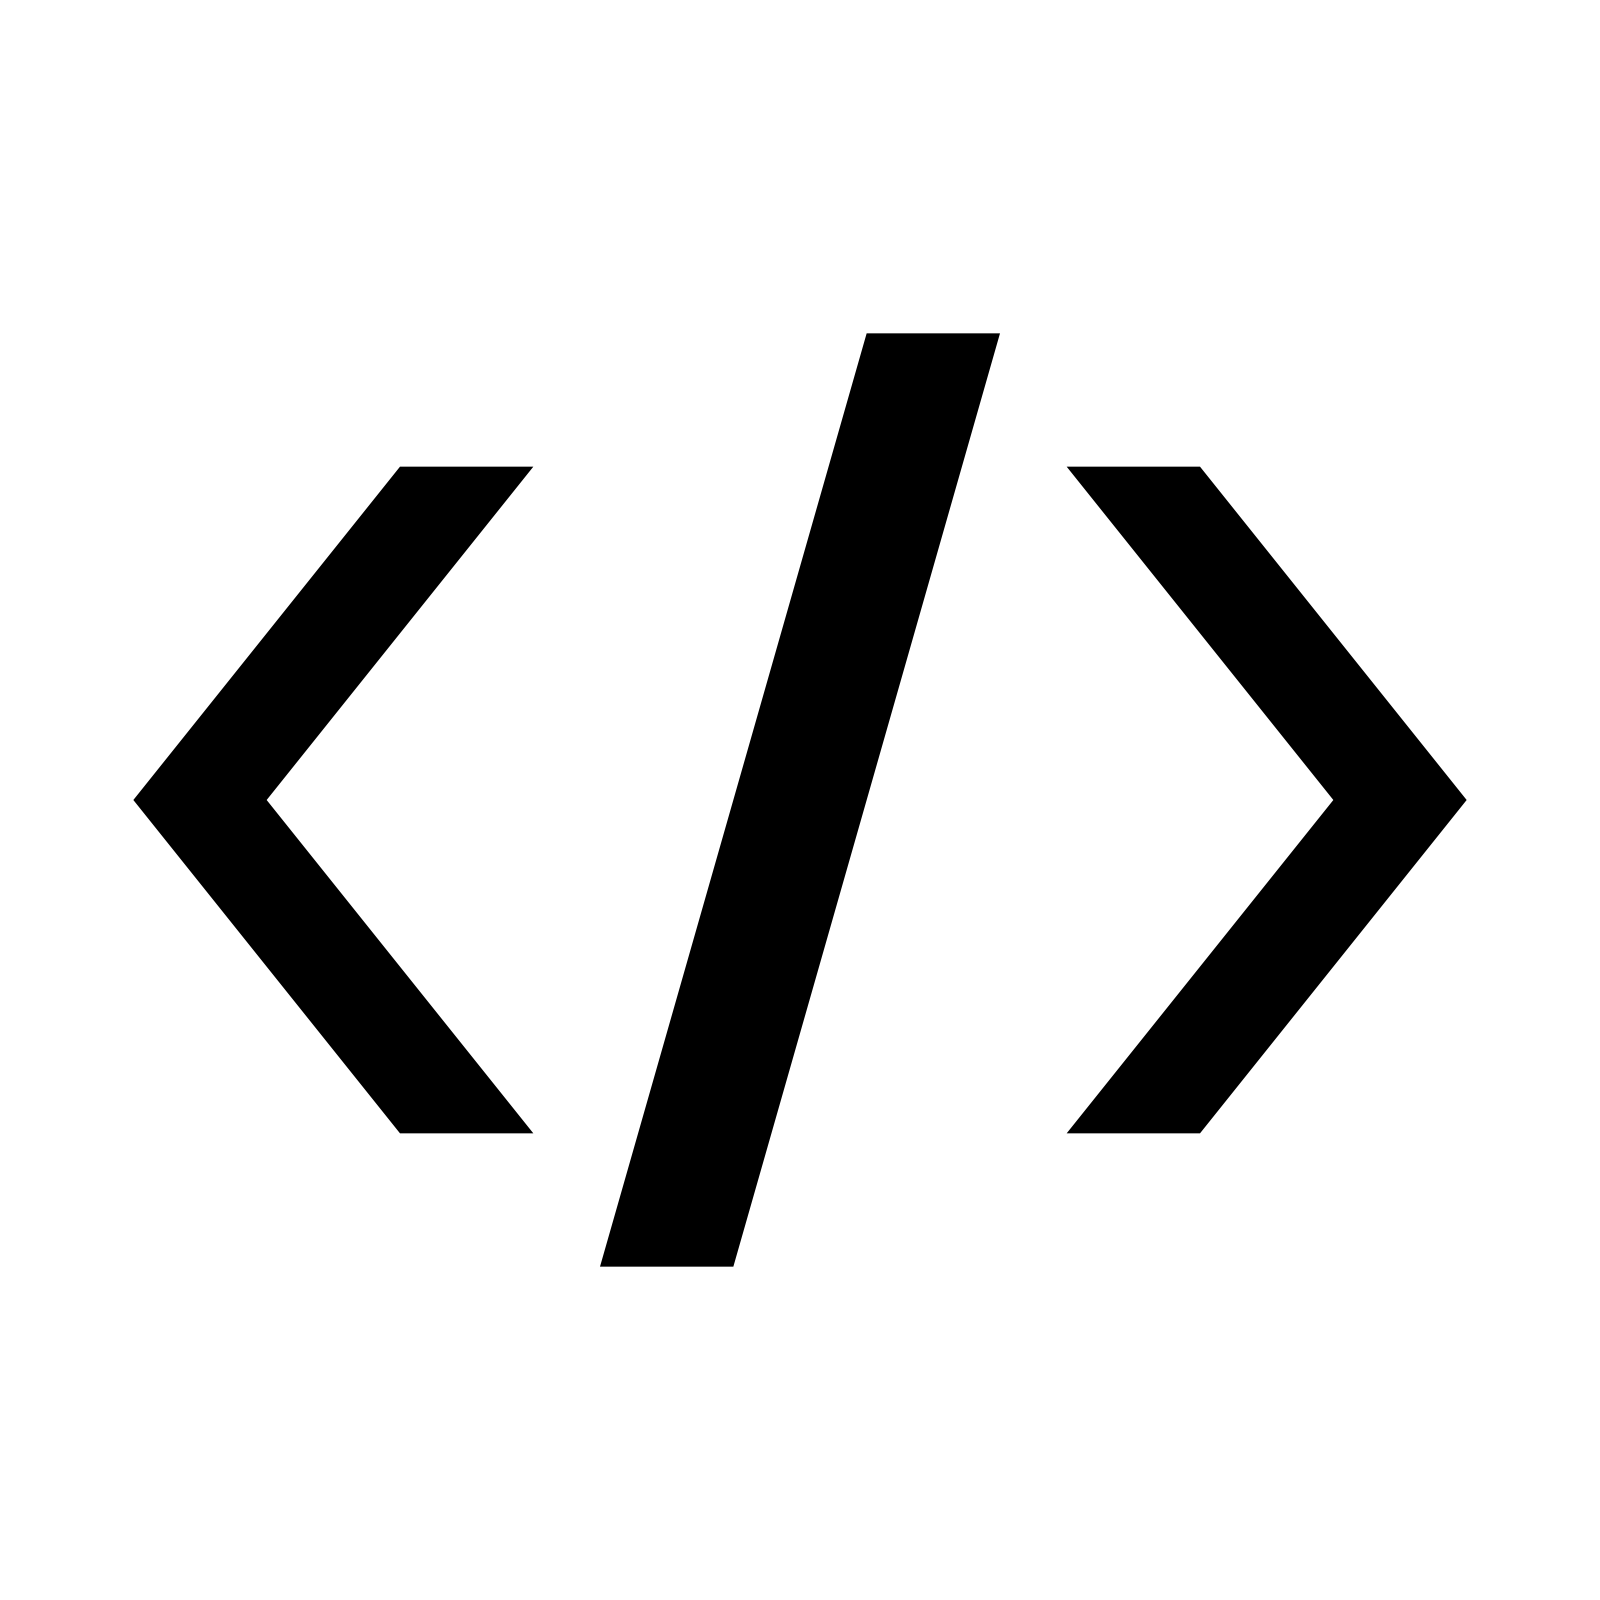 Source Code icon - Coder PNG